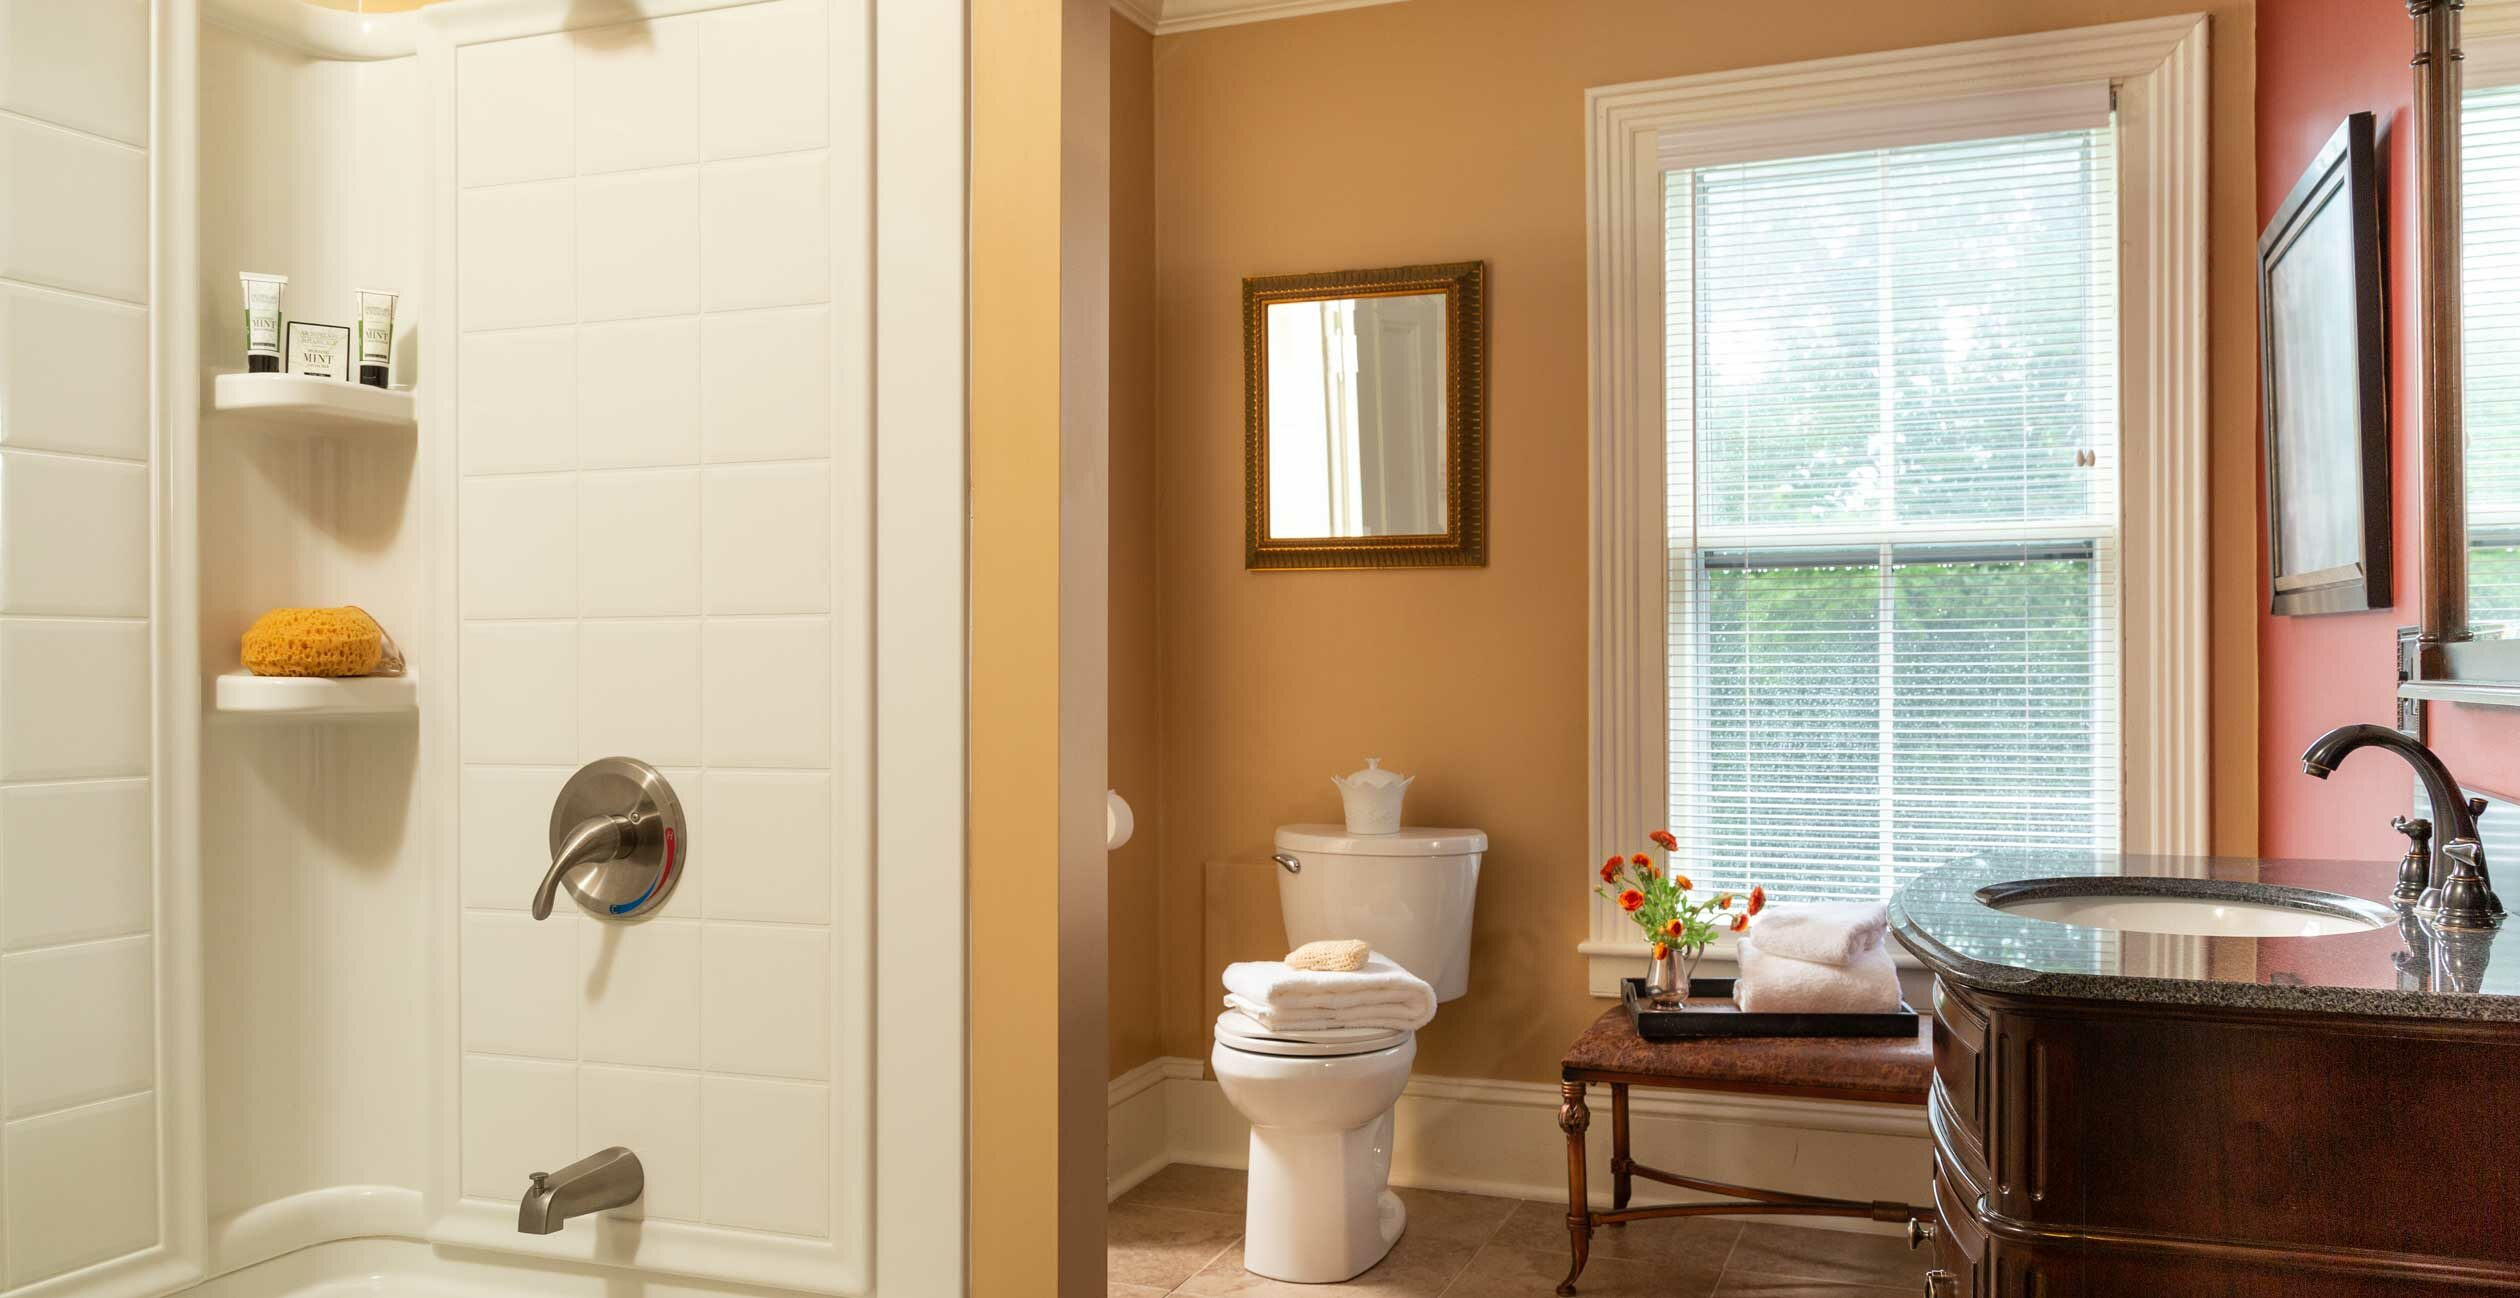 Spacious bathroom with a shower and tub and window